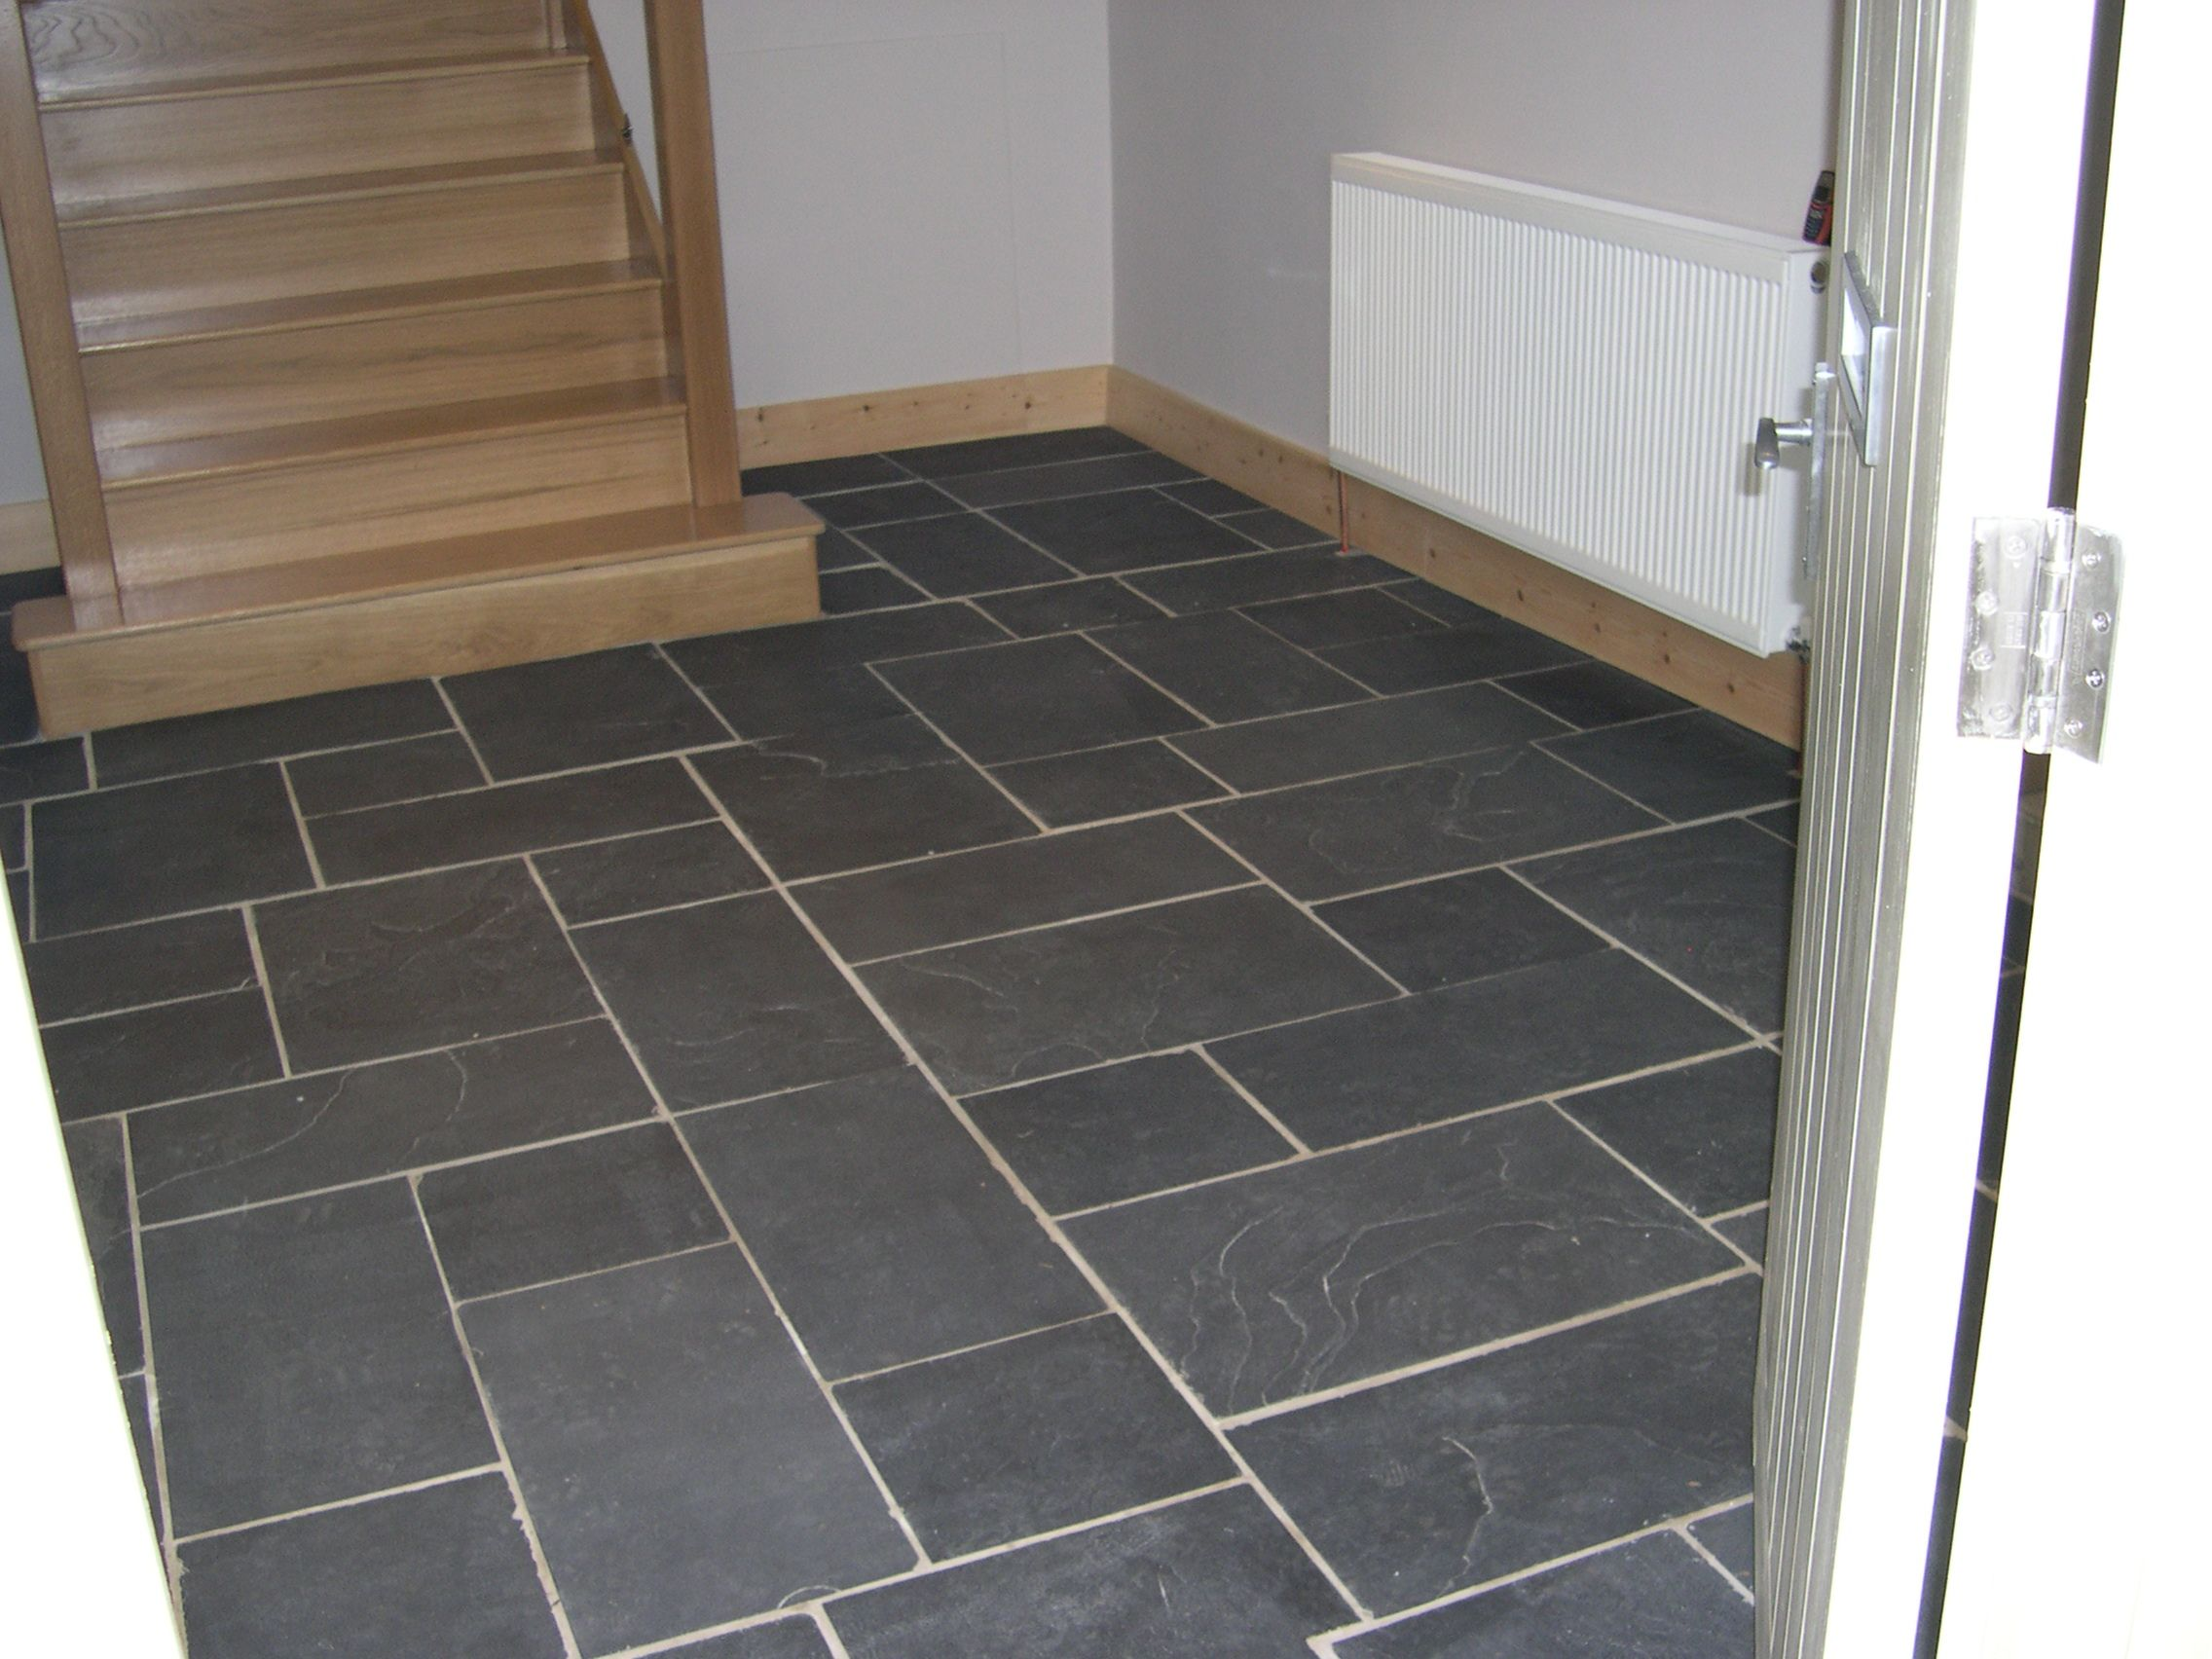 Slate look floor tiles google search bathroom pinterest tile flooring dailygadgetfo Choice Image